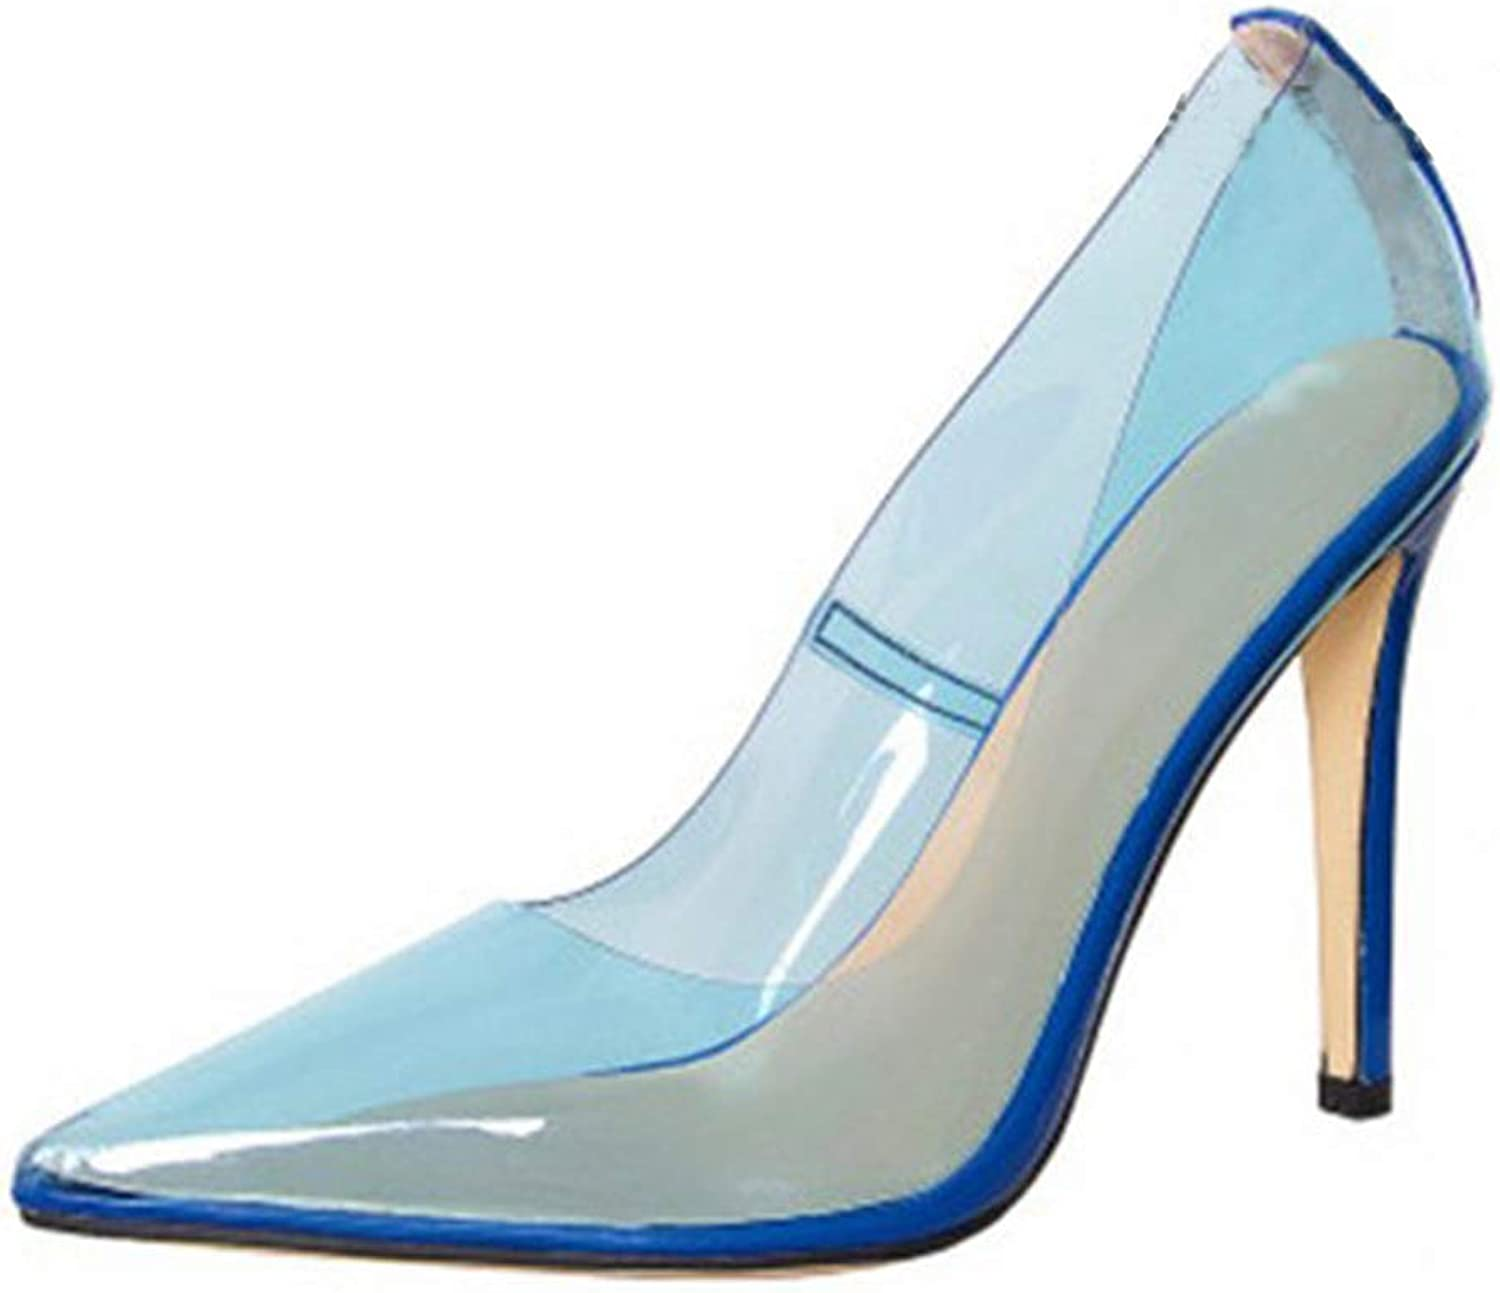 Women's High Heel Pumps Sexy Pointed Toe Nude Clear Pump Slip On Stiletto Heels Sandals Wedding Dress shoes